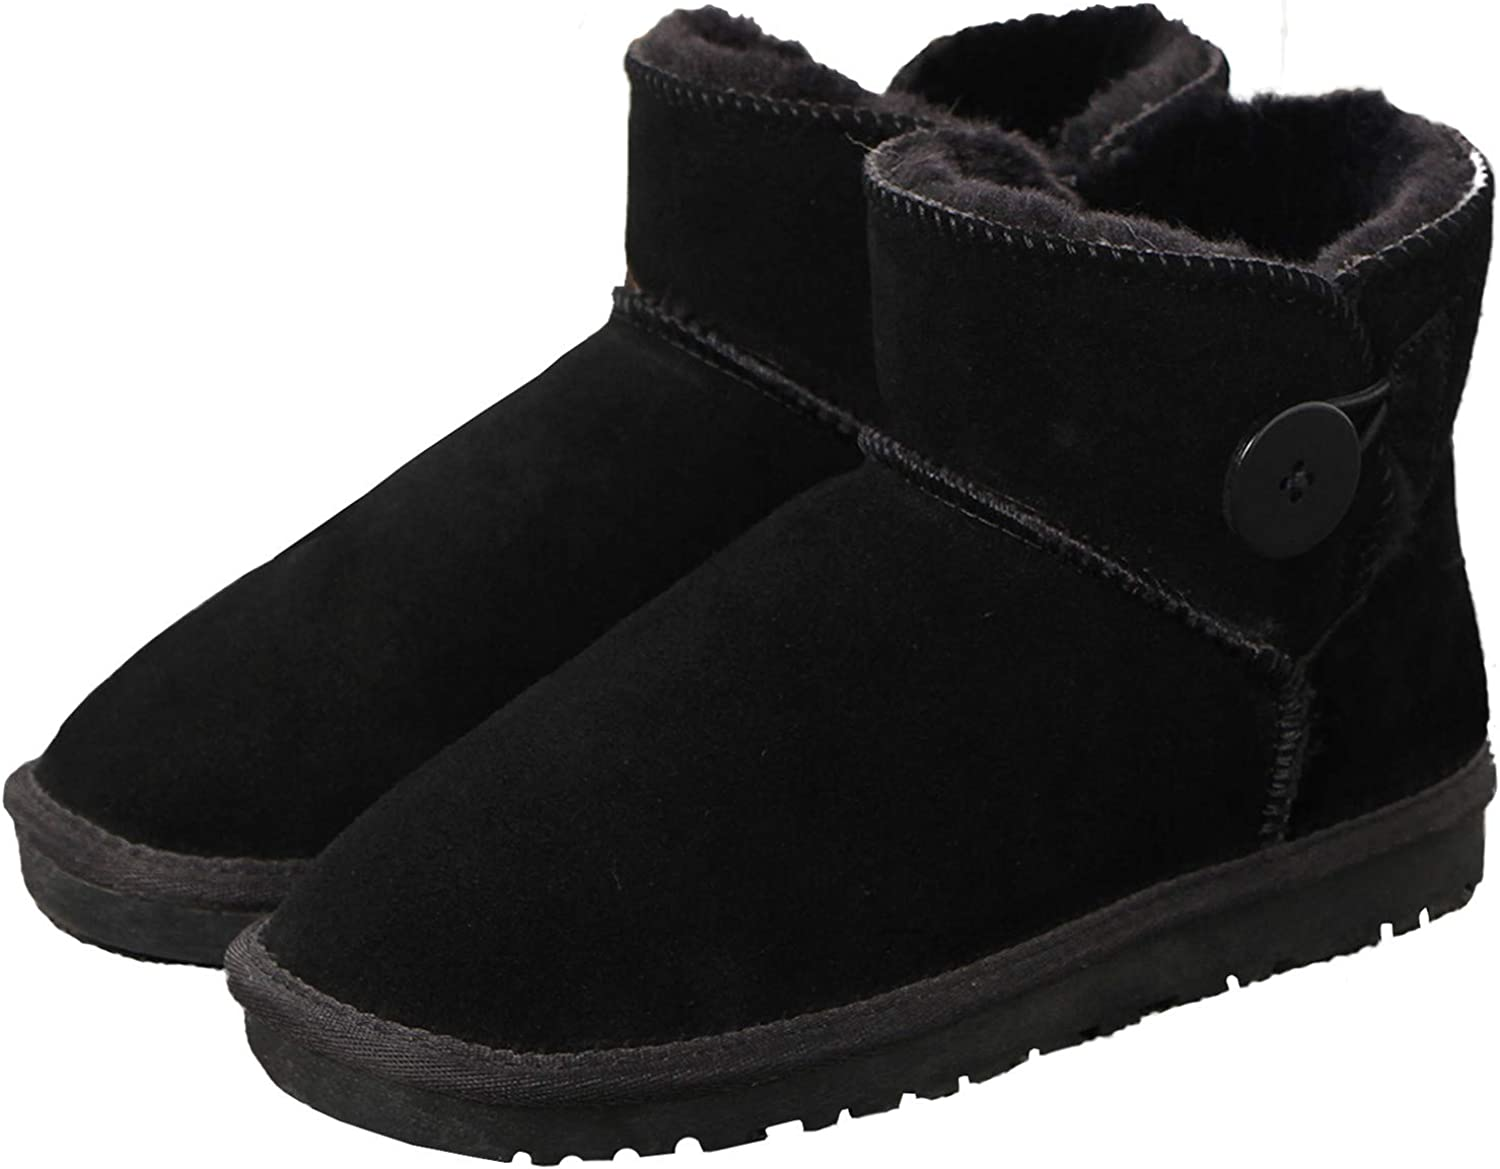 Yaketera Women's Fashion Classic Mid Calf Boot Winter Warm Short Button Comfort Snow Boots shoes